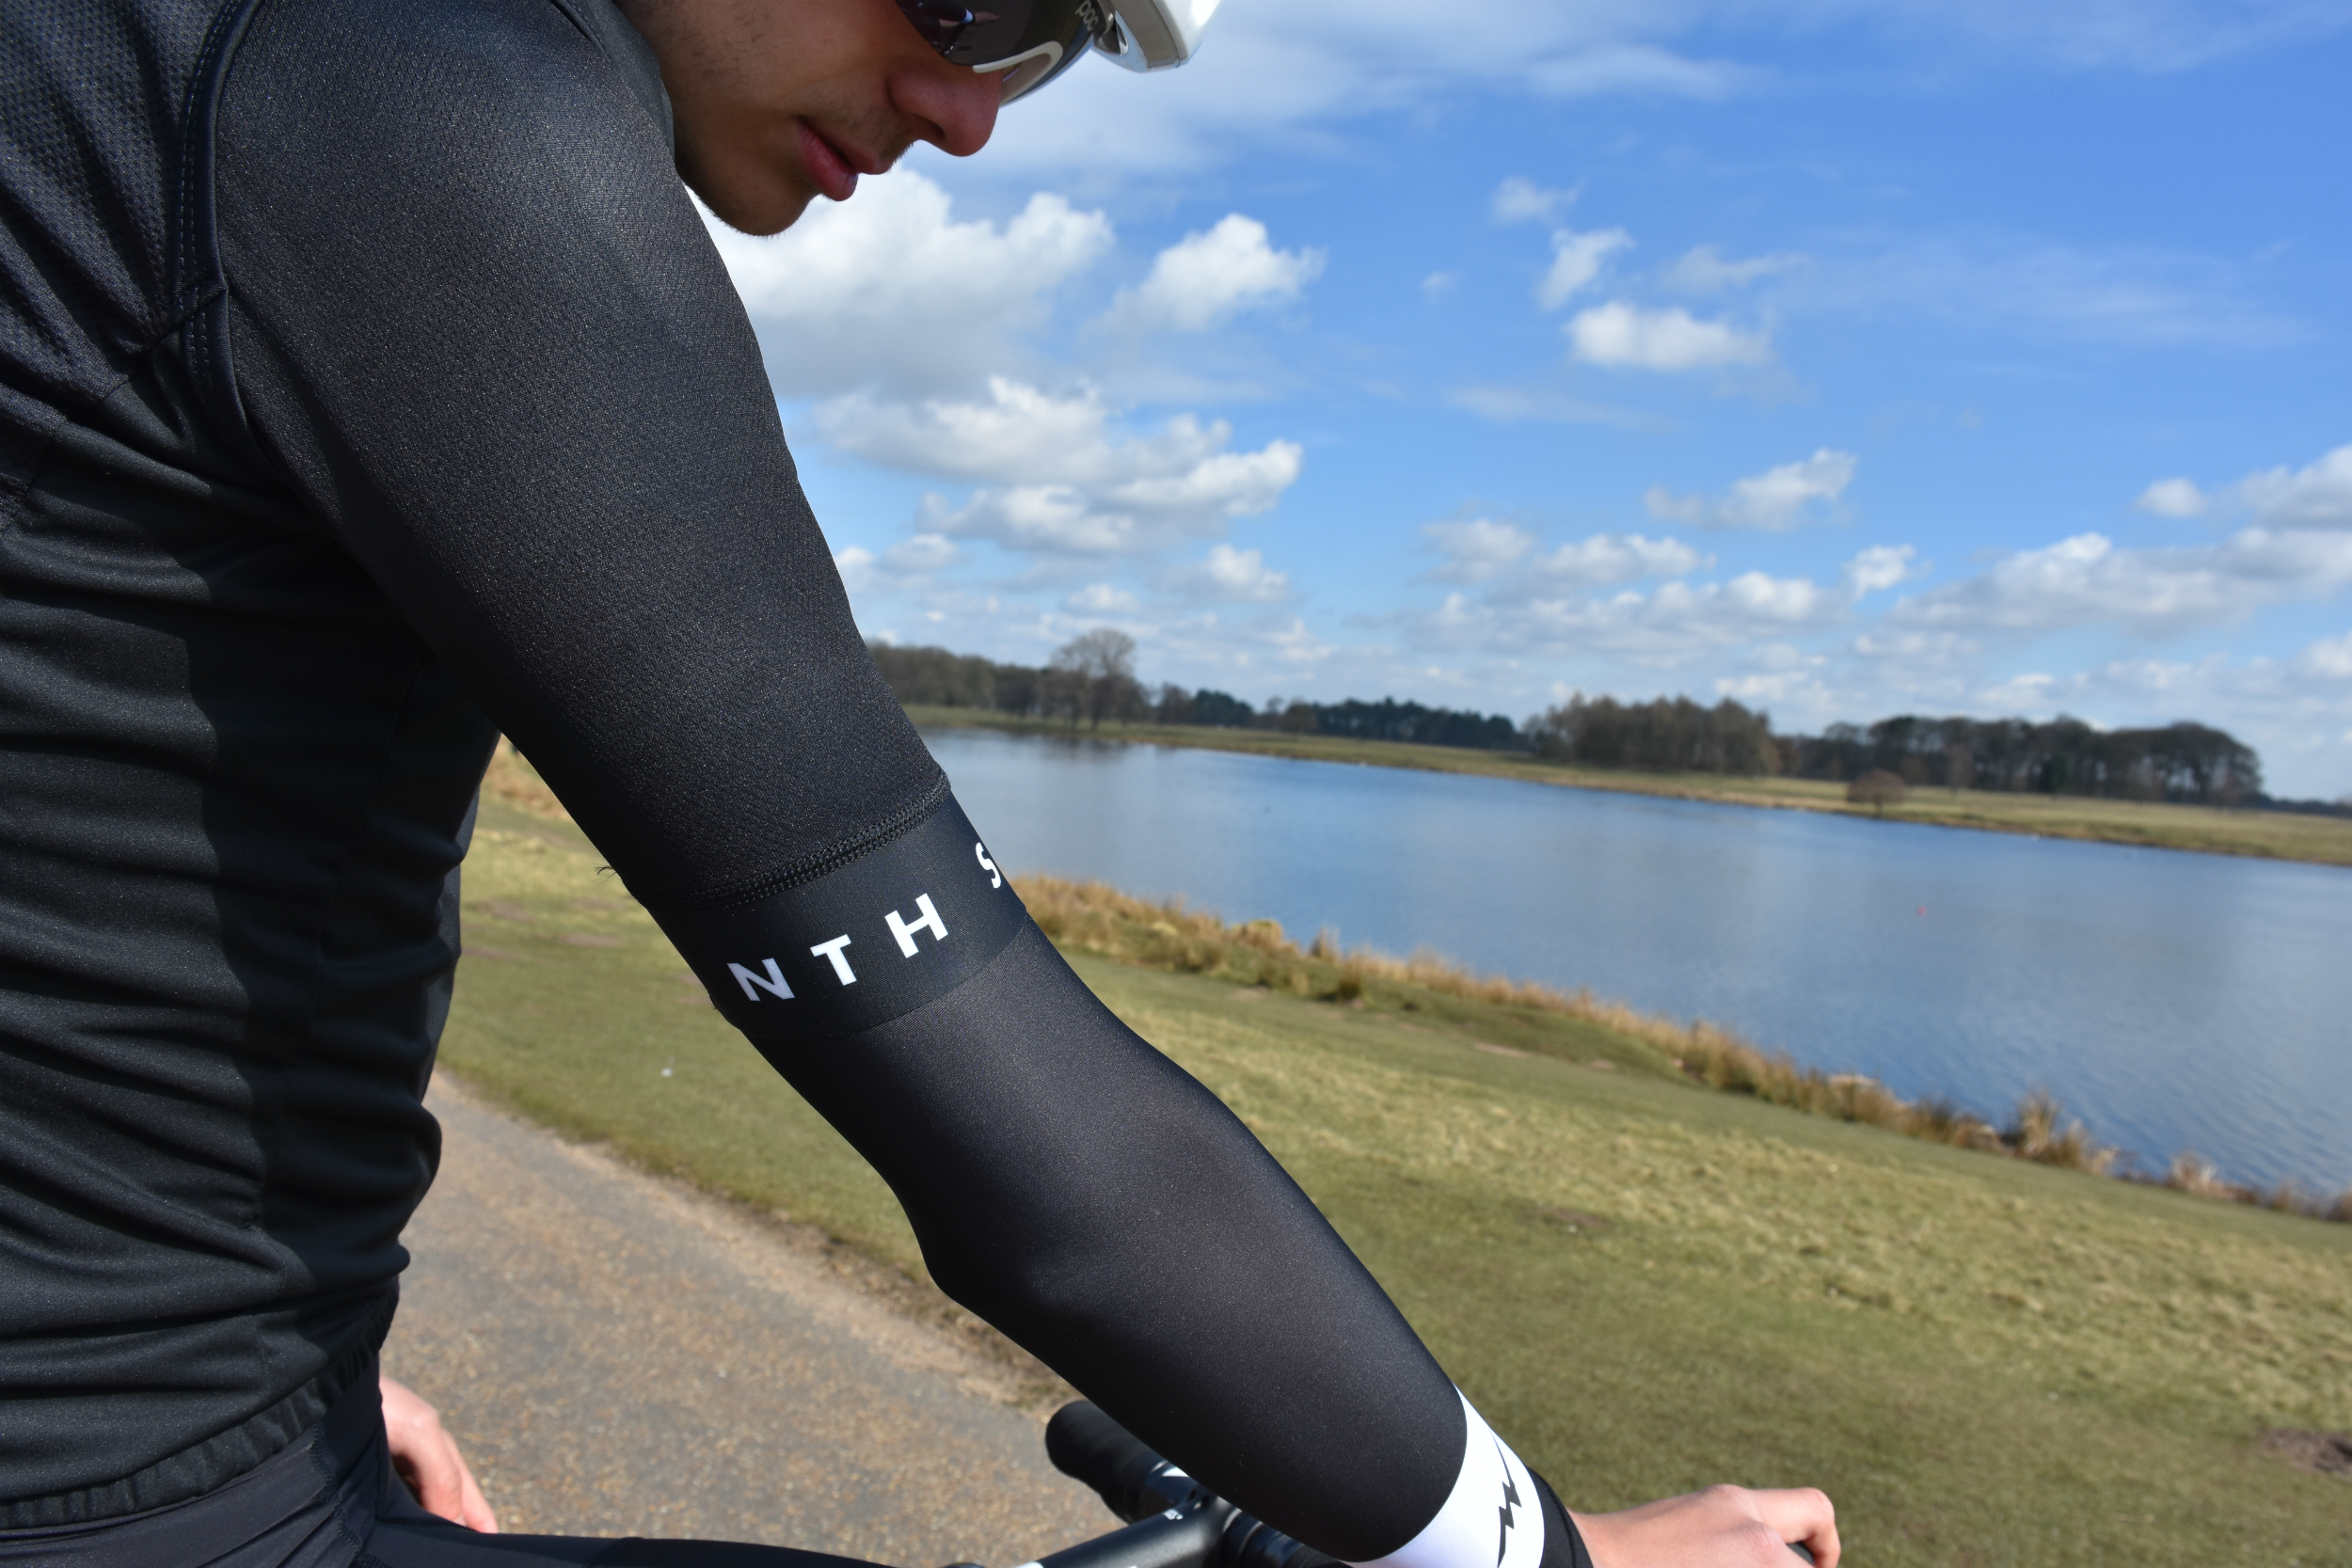 the morvelo stealth nth series arm screens and jersey sleeve